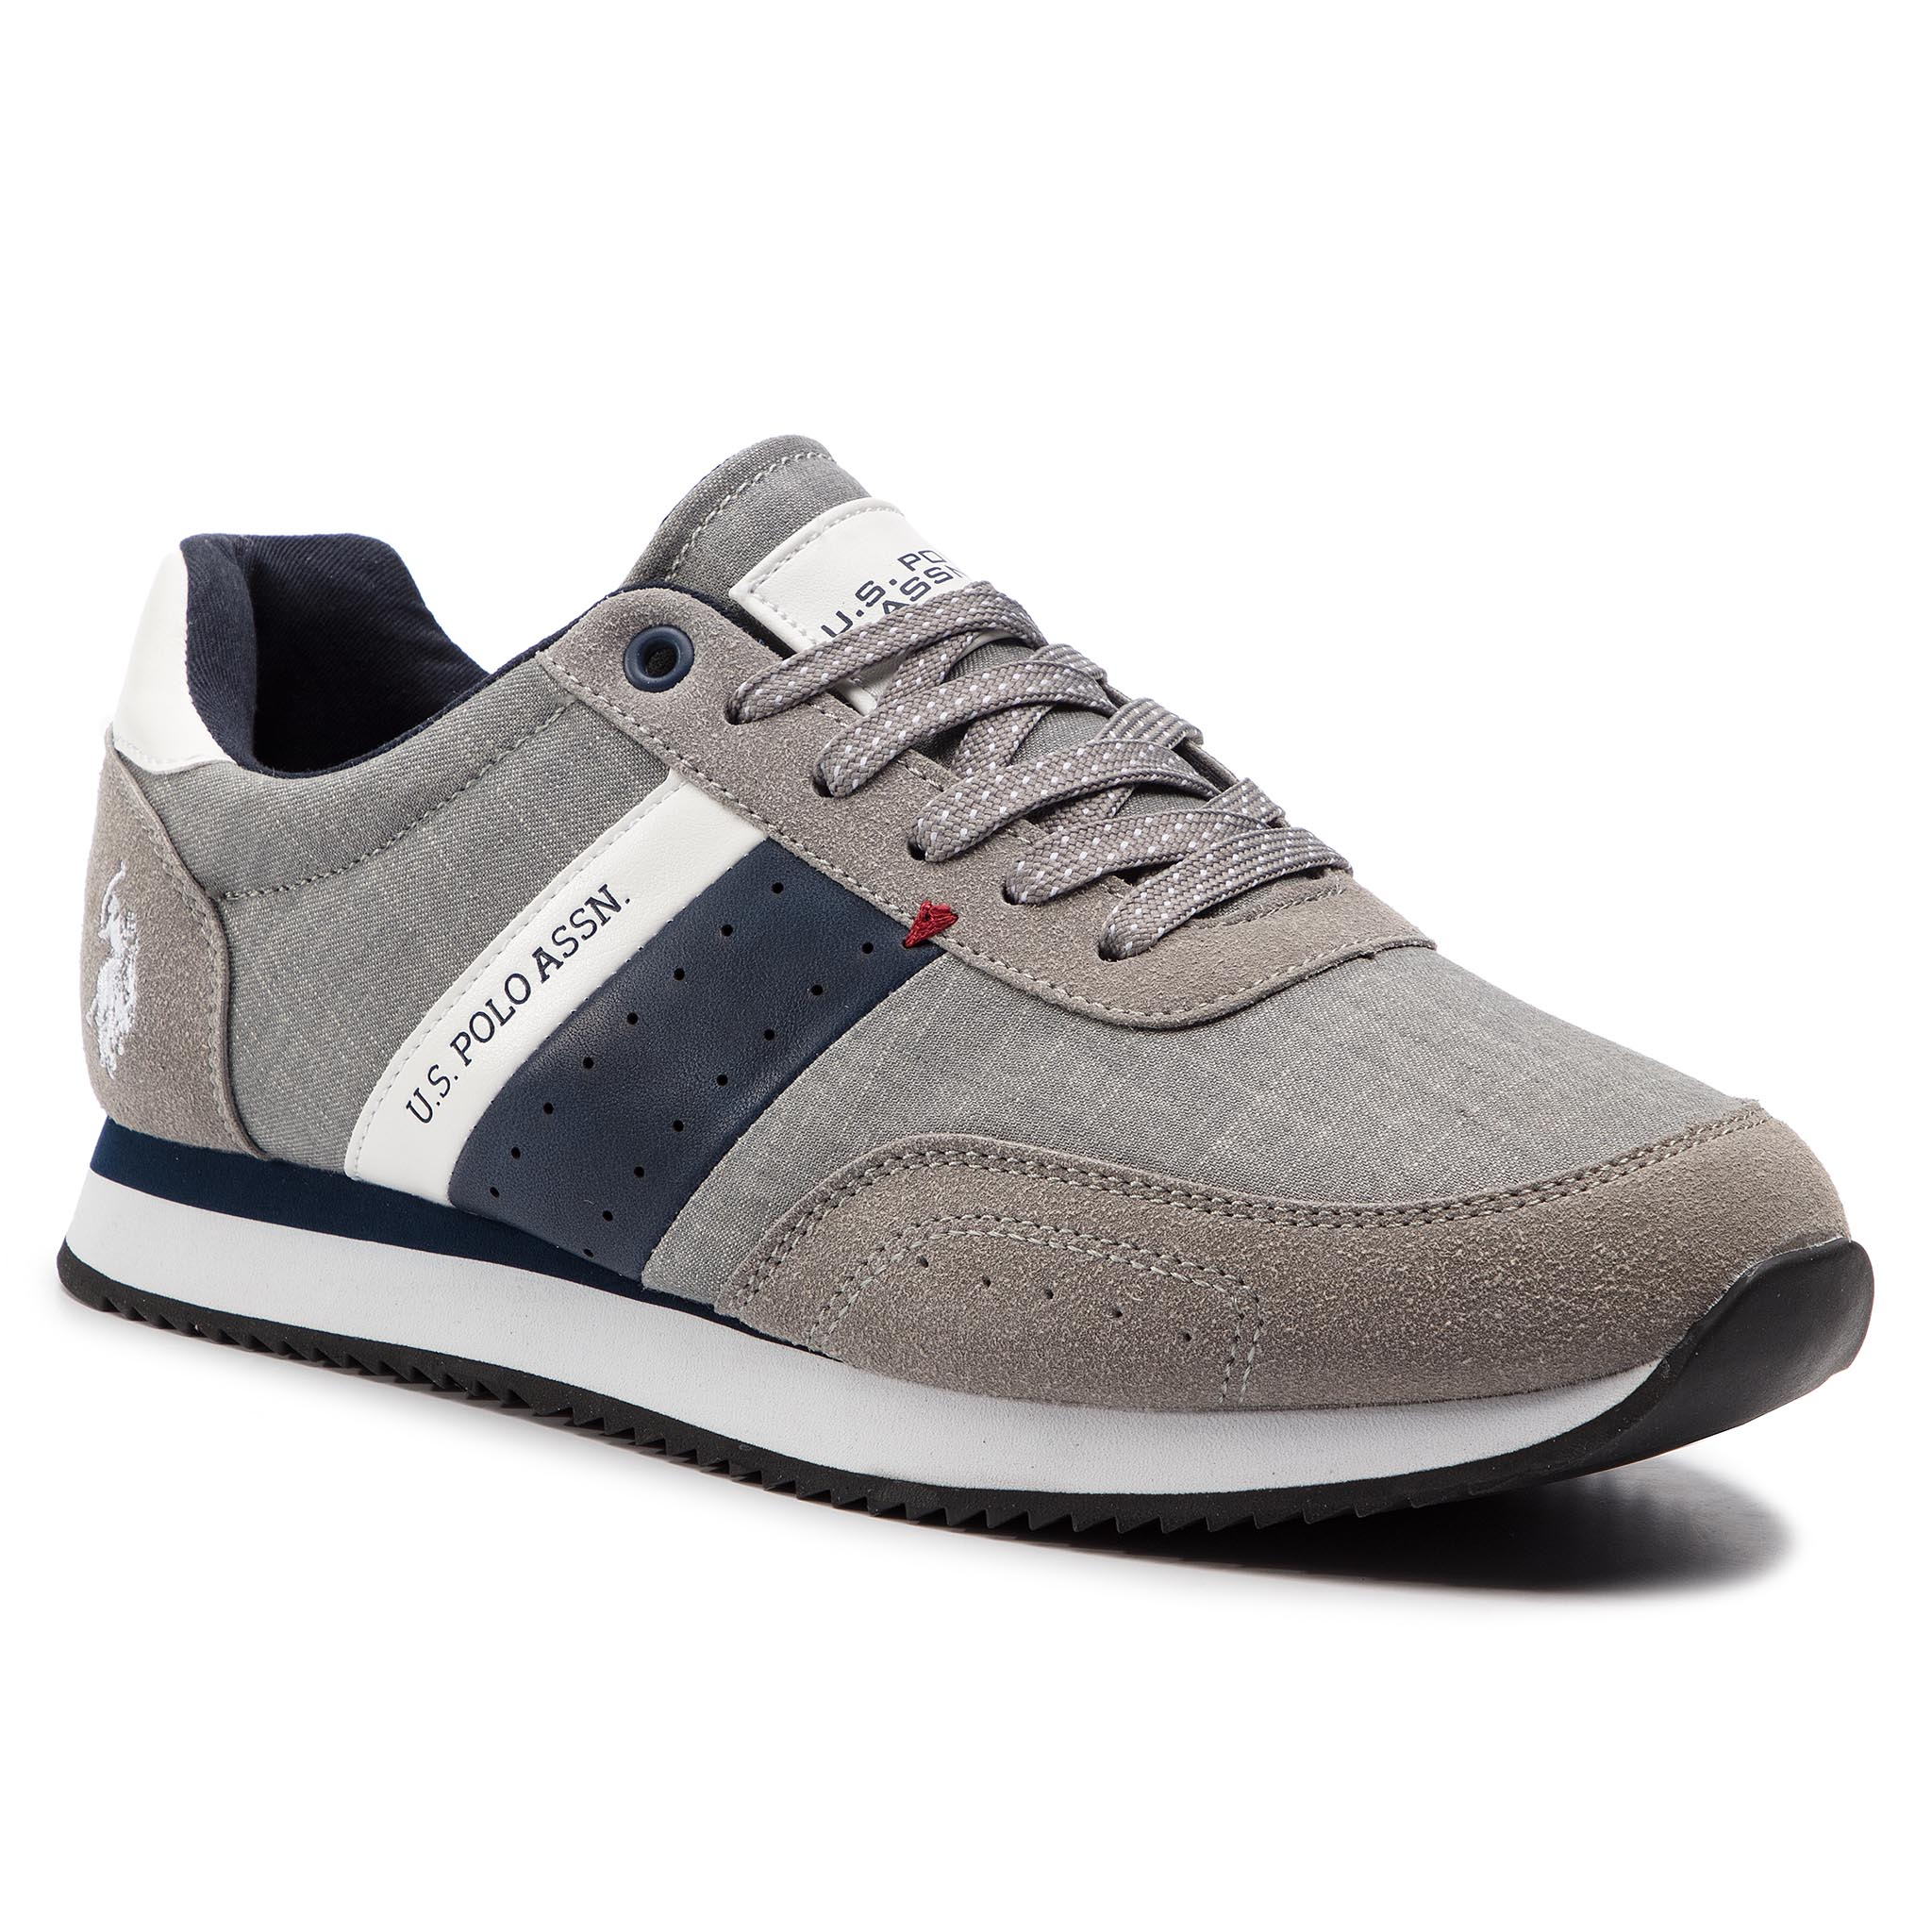 0f5254d0b978 Sneakers U.S. POLO ASSN. - Julius FLASH4088S9 SN1 Yel - Sneakers ...